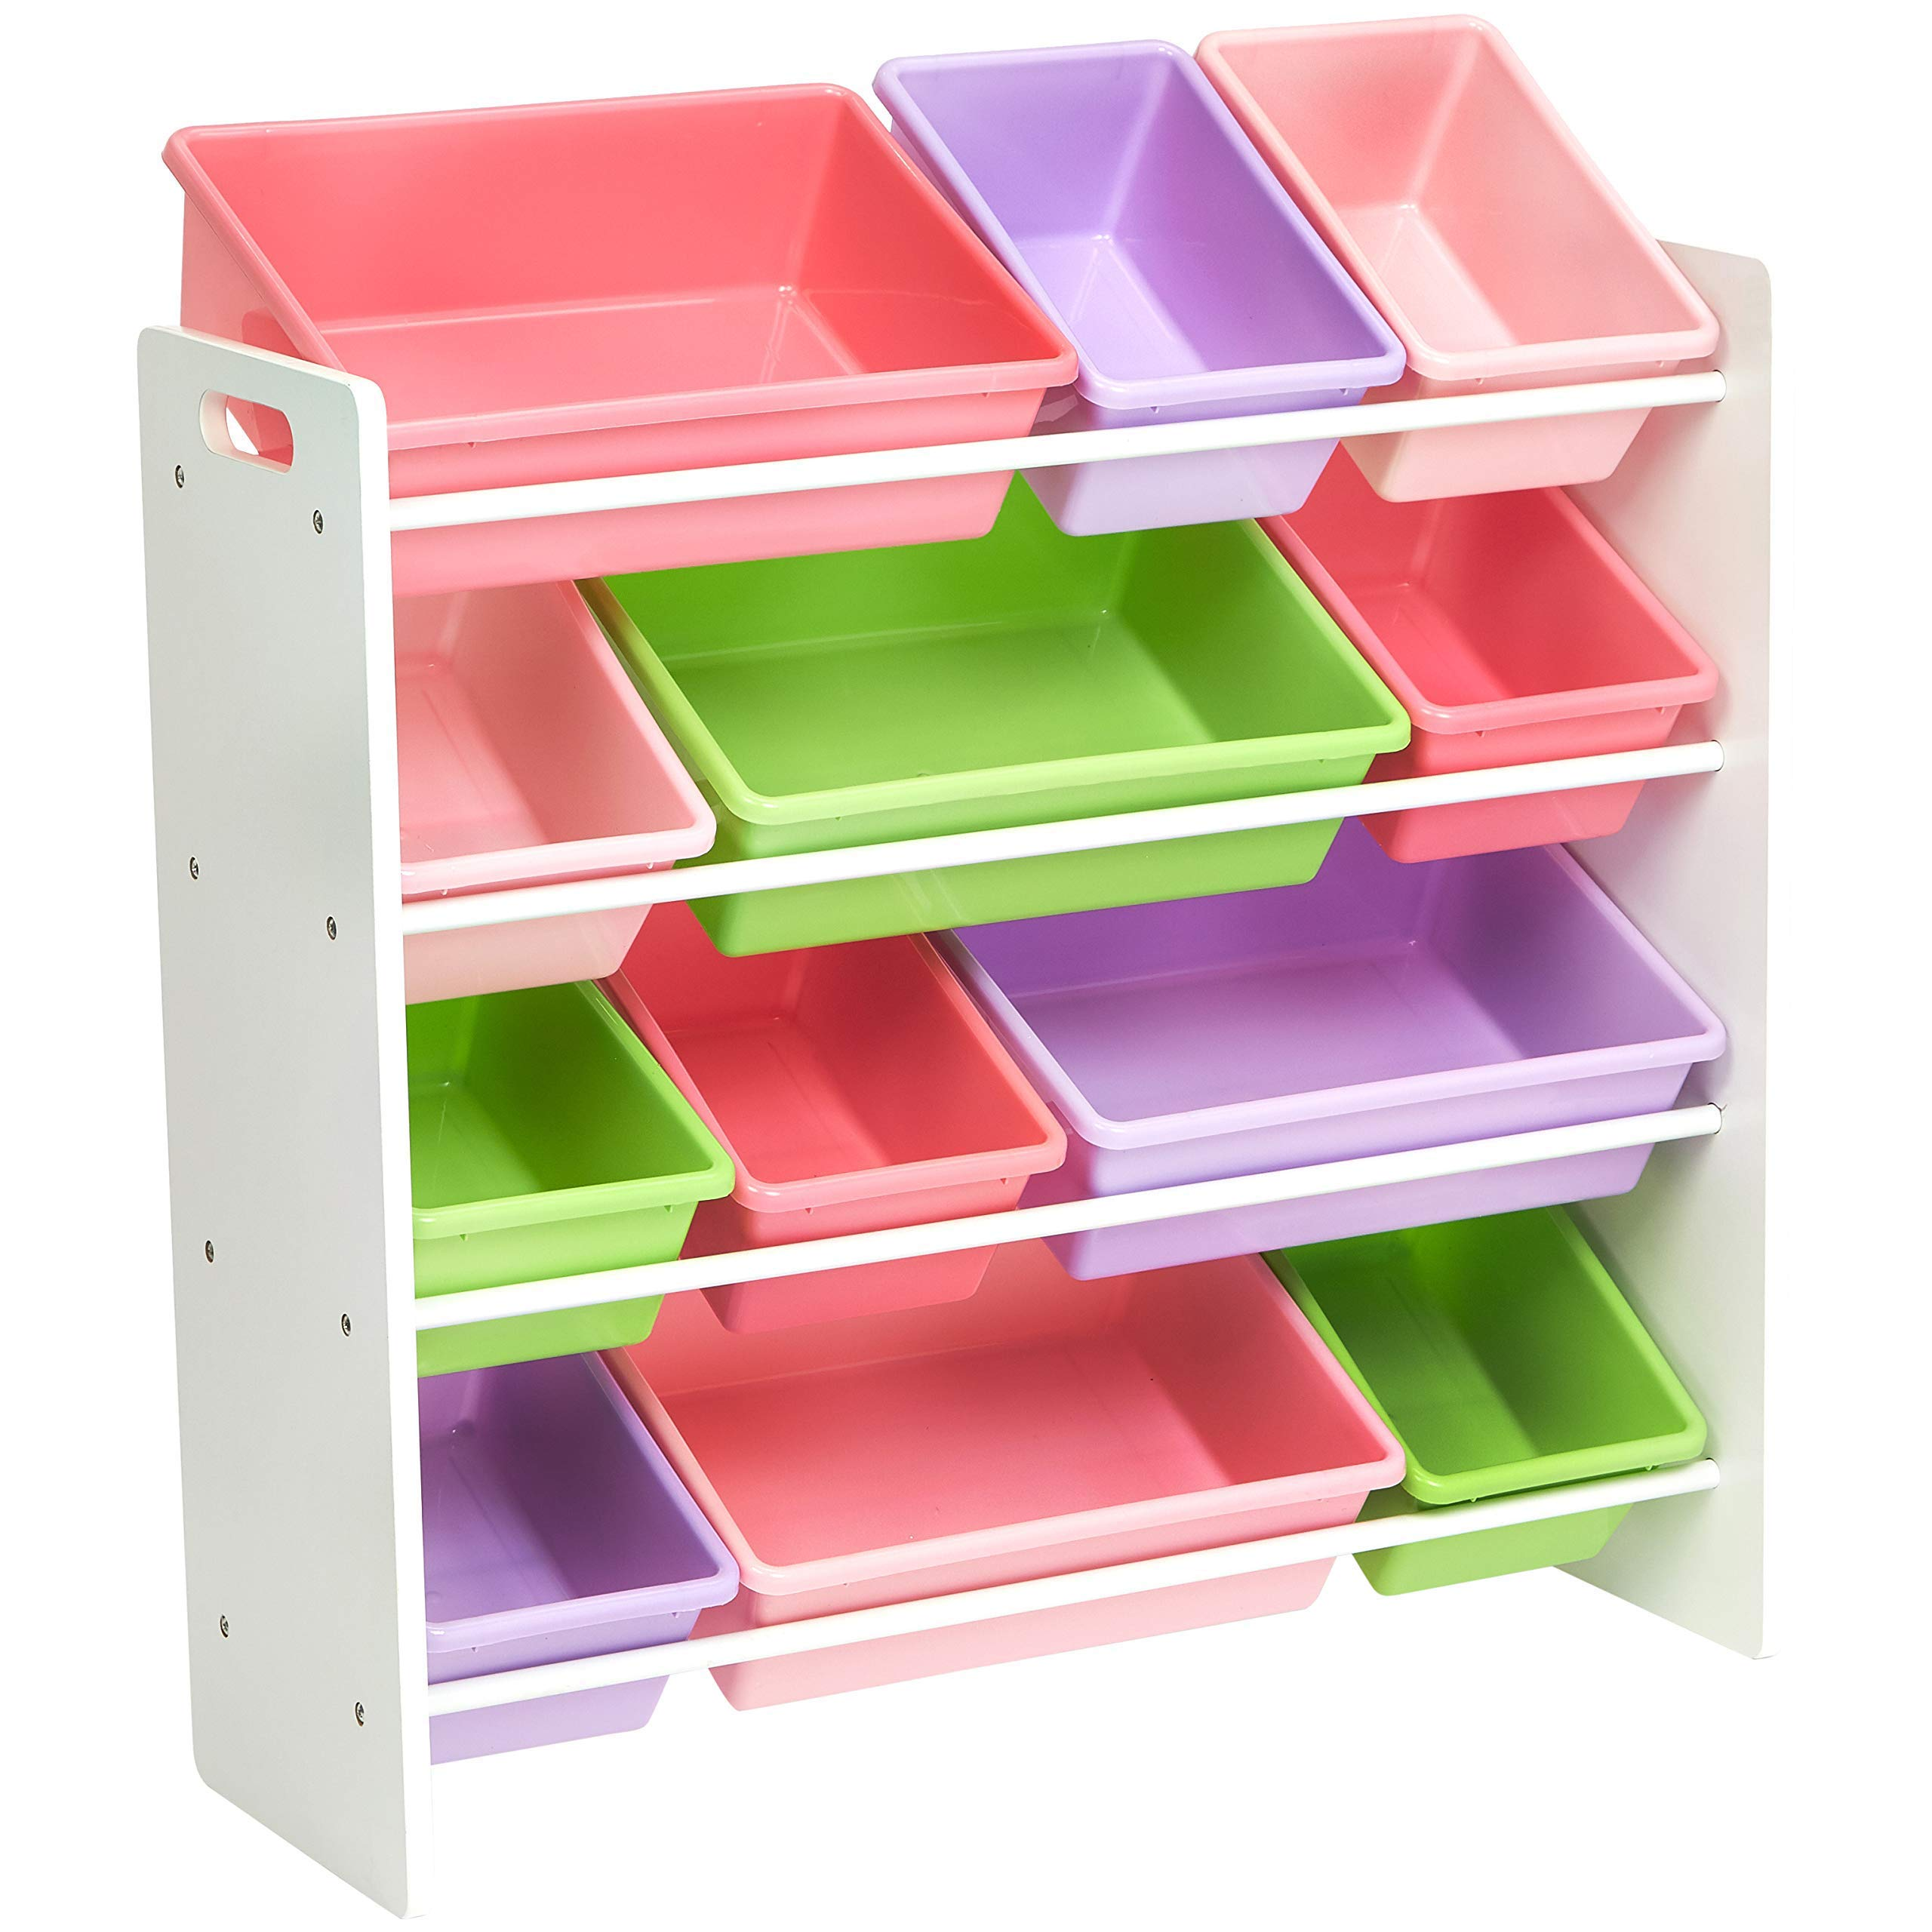 AmazonBasics Kids Toy Storage Organizer Bins - White/Pastel (Renewed) by AmazonBasics